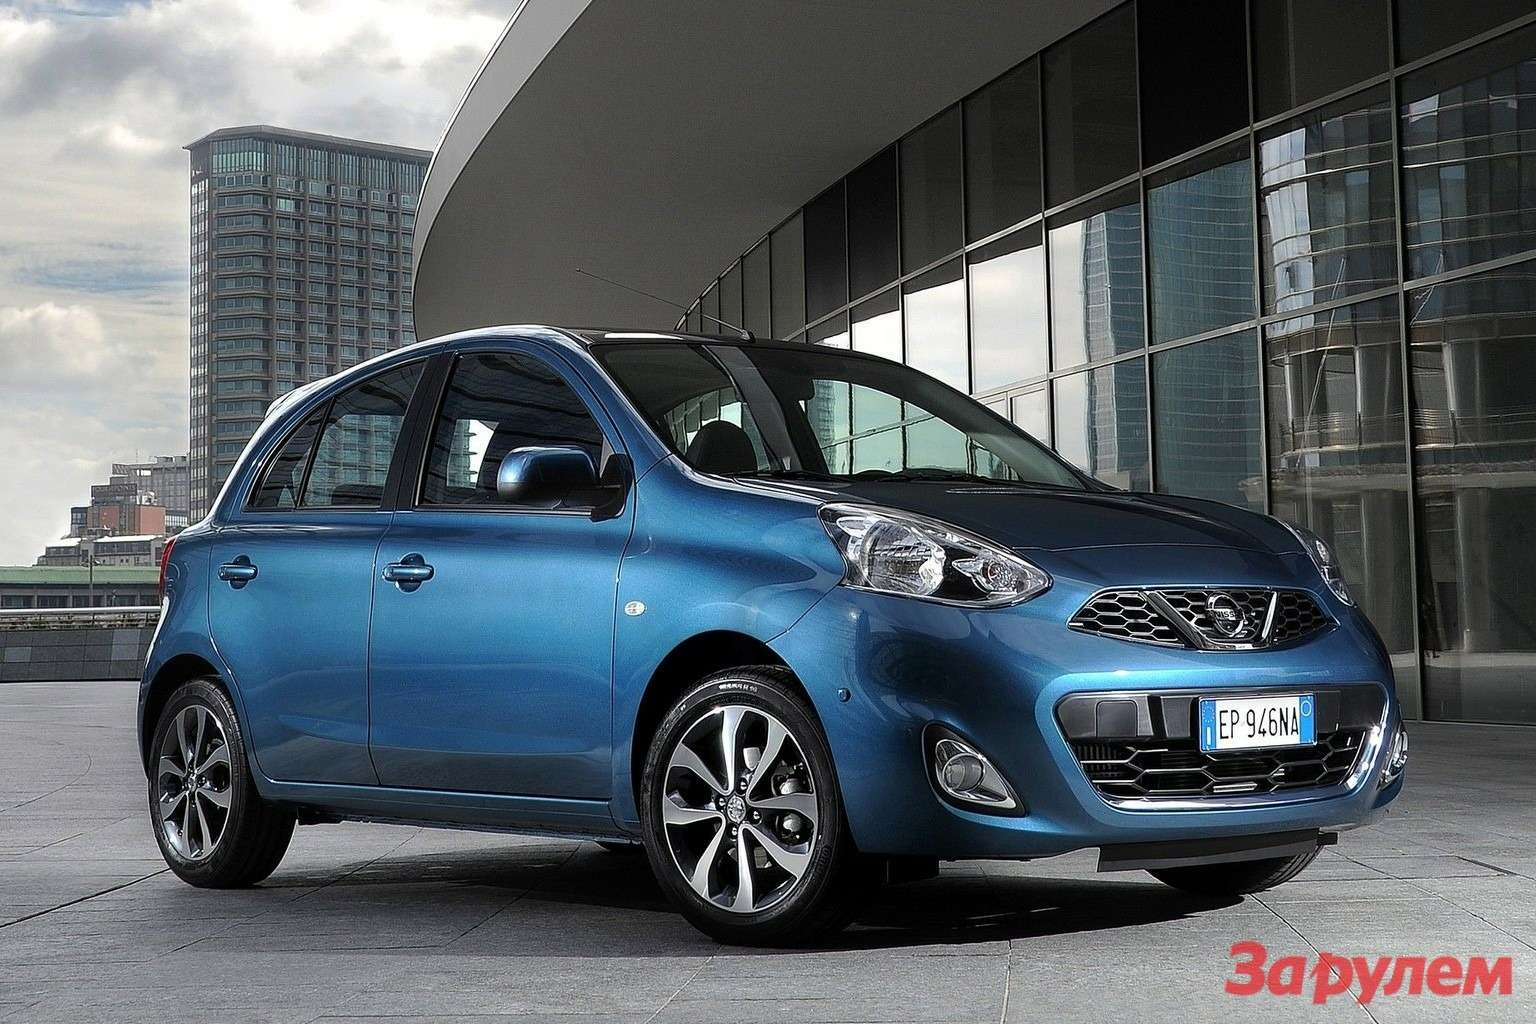 Nissan Micra 2014 1600x1200 wallpaper 02